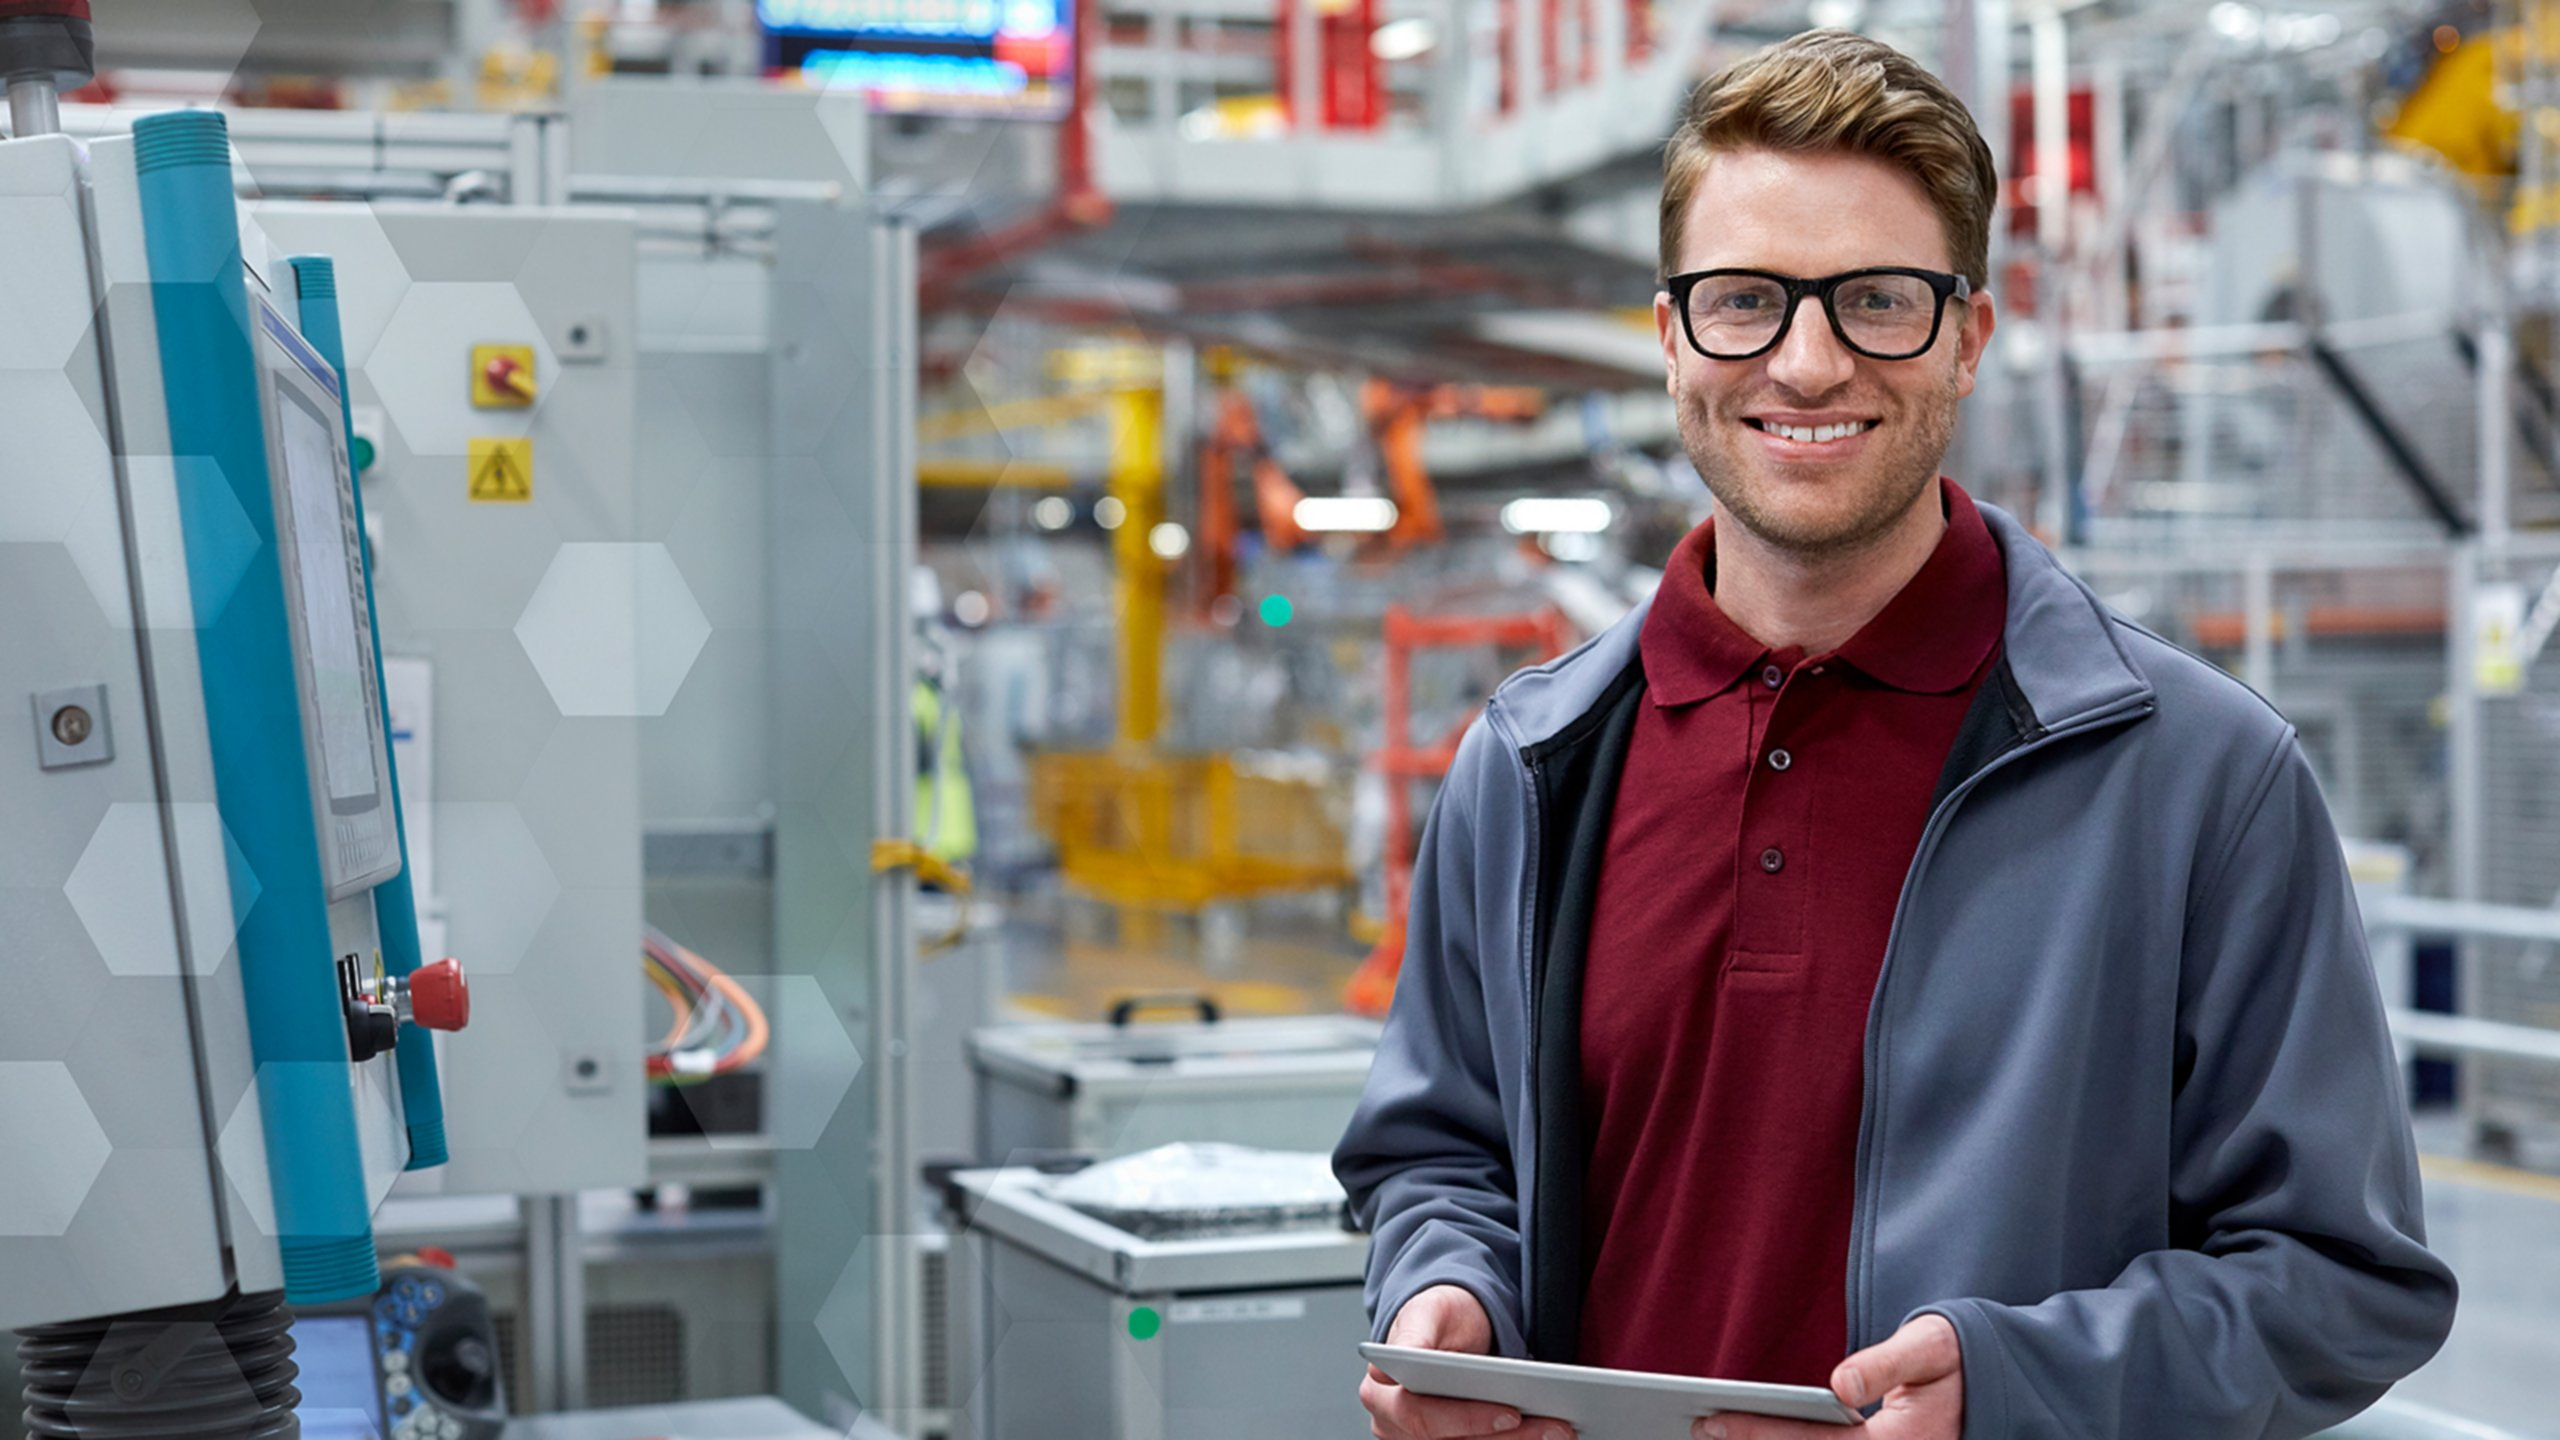 man wearing glasses, red polo, blue jacket holding tablet in factory setting deploying ScanESC lockout/tagout software program